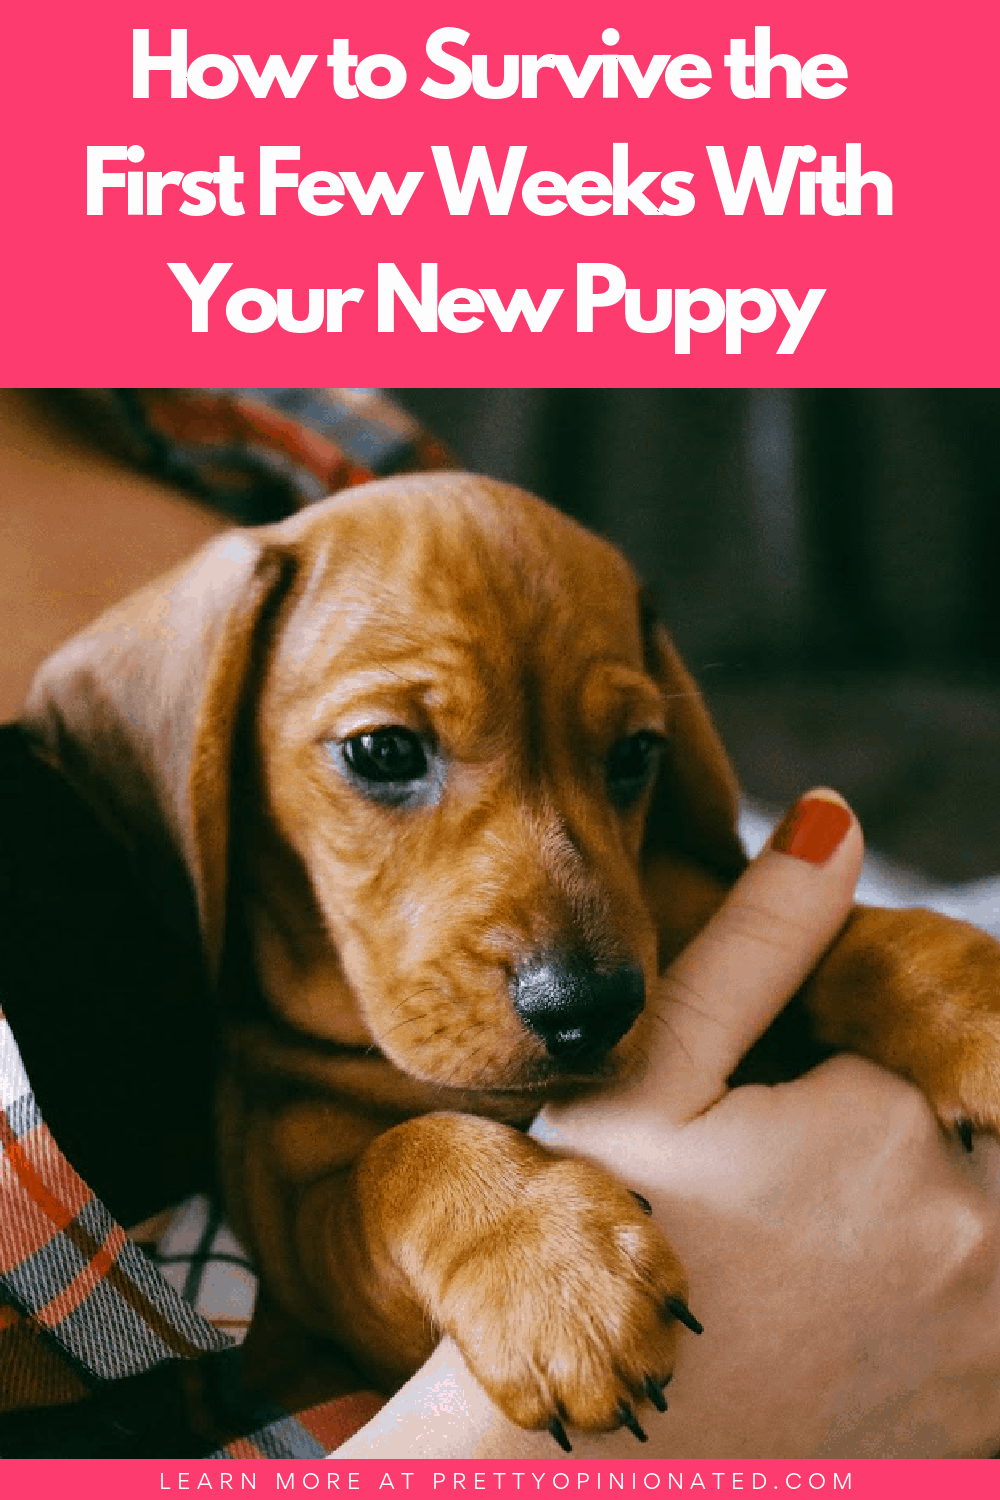 If there's one thing about owning a dog that no one is truly prepared for, it's how to survive the first few weeks with your new puppy. These tips will help!